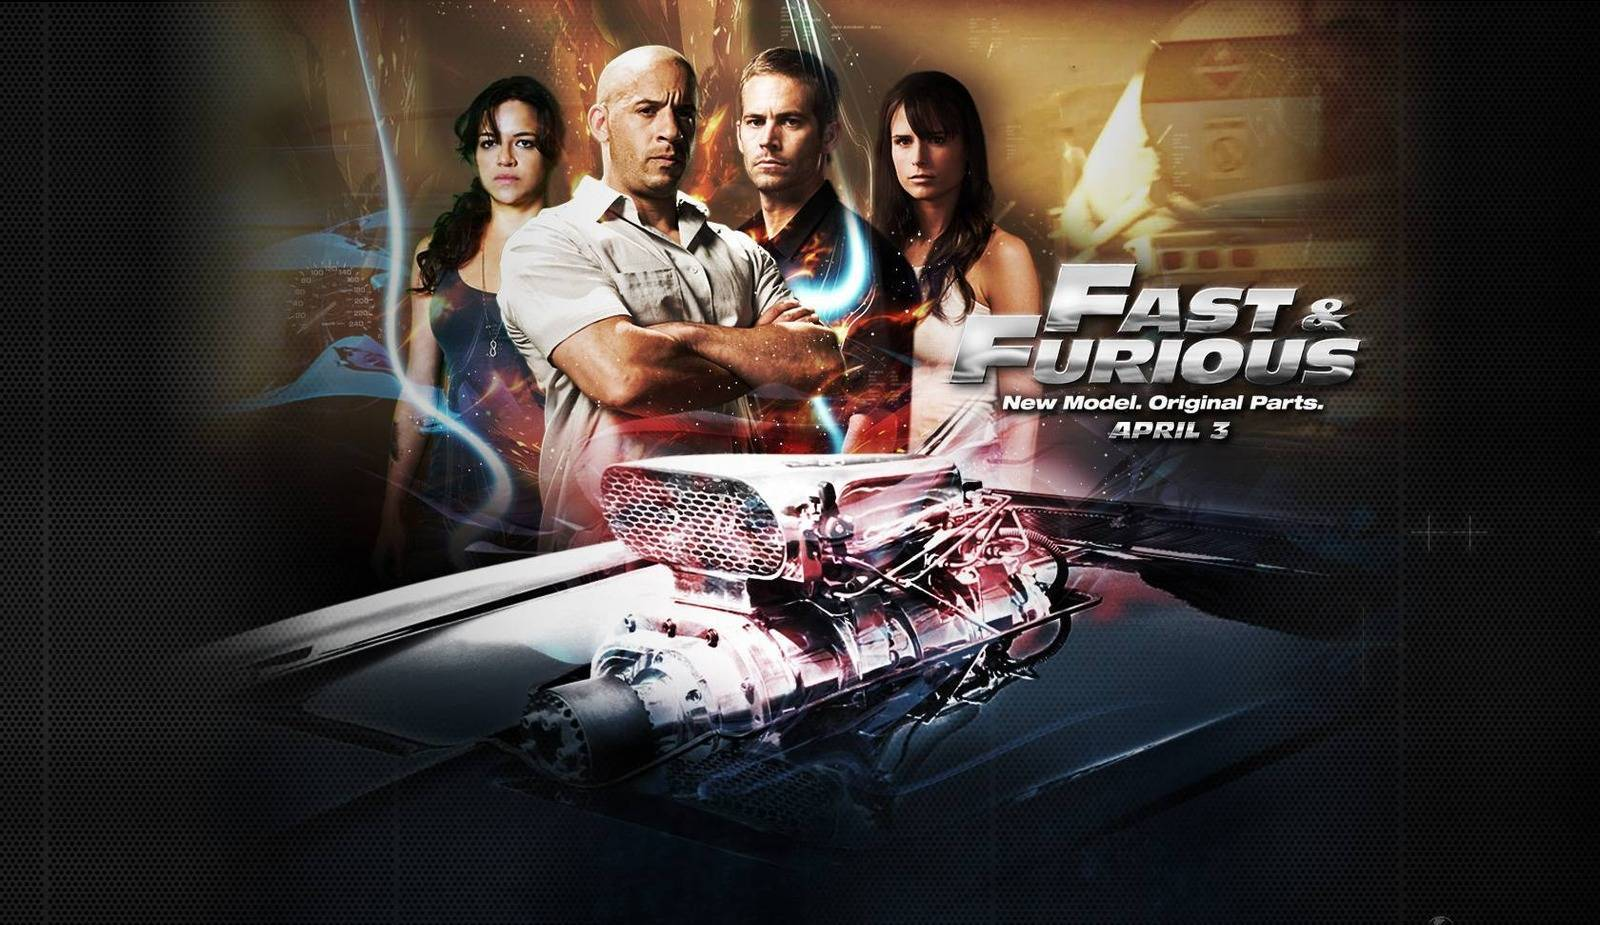 pic famina fast furious 6 hd wallpapers. Black Bedroom Furniture Sets. Home Design Ideas